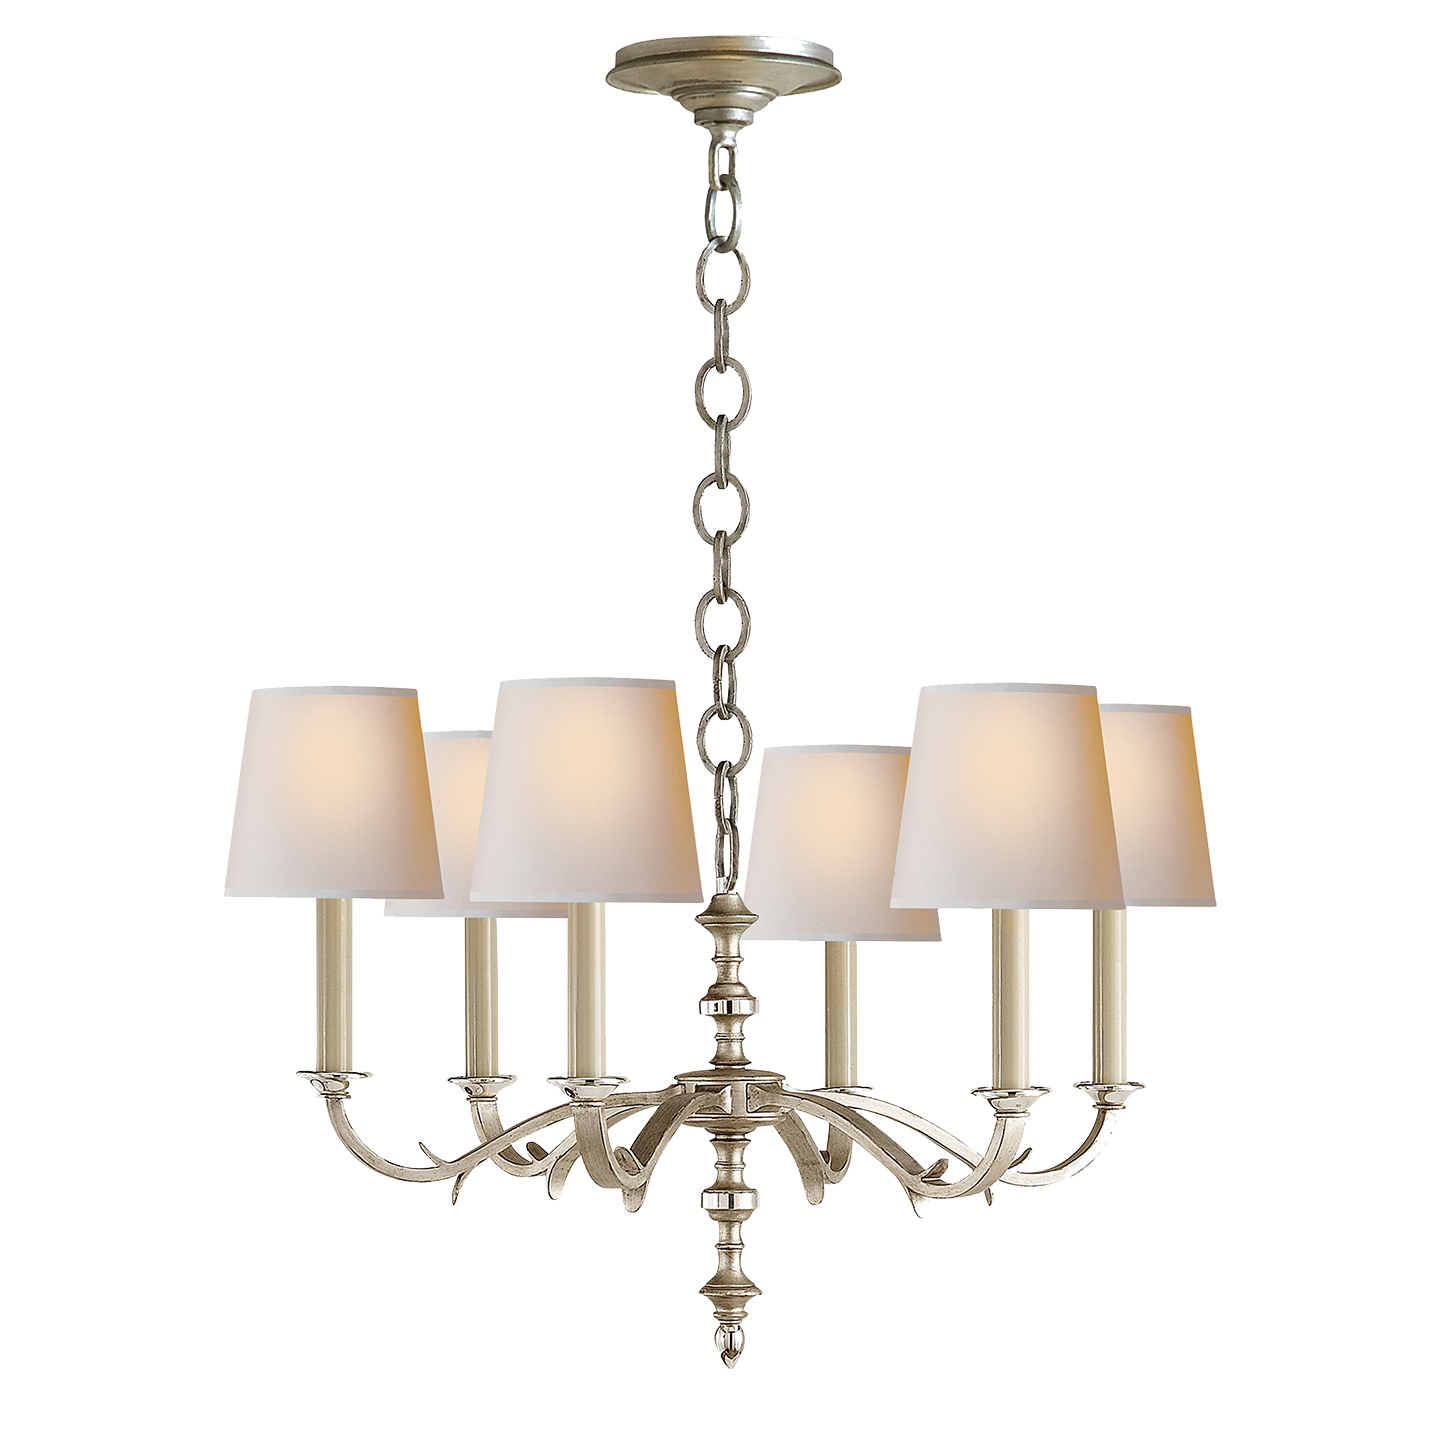 Channing Small Chandelier Visual Comfort Lighting Modern Light